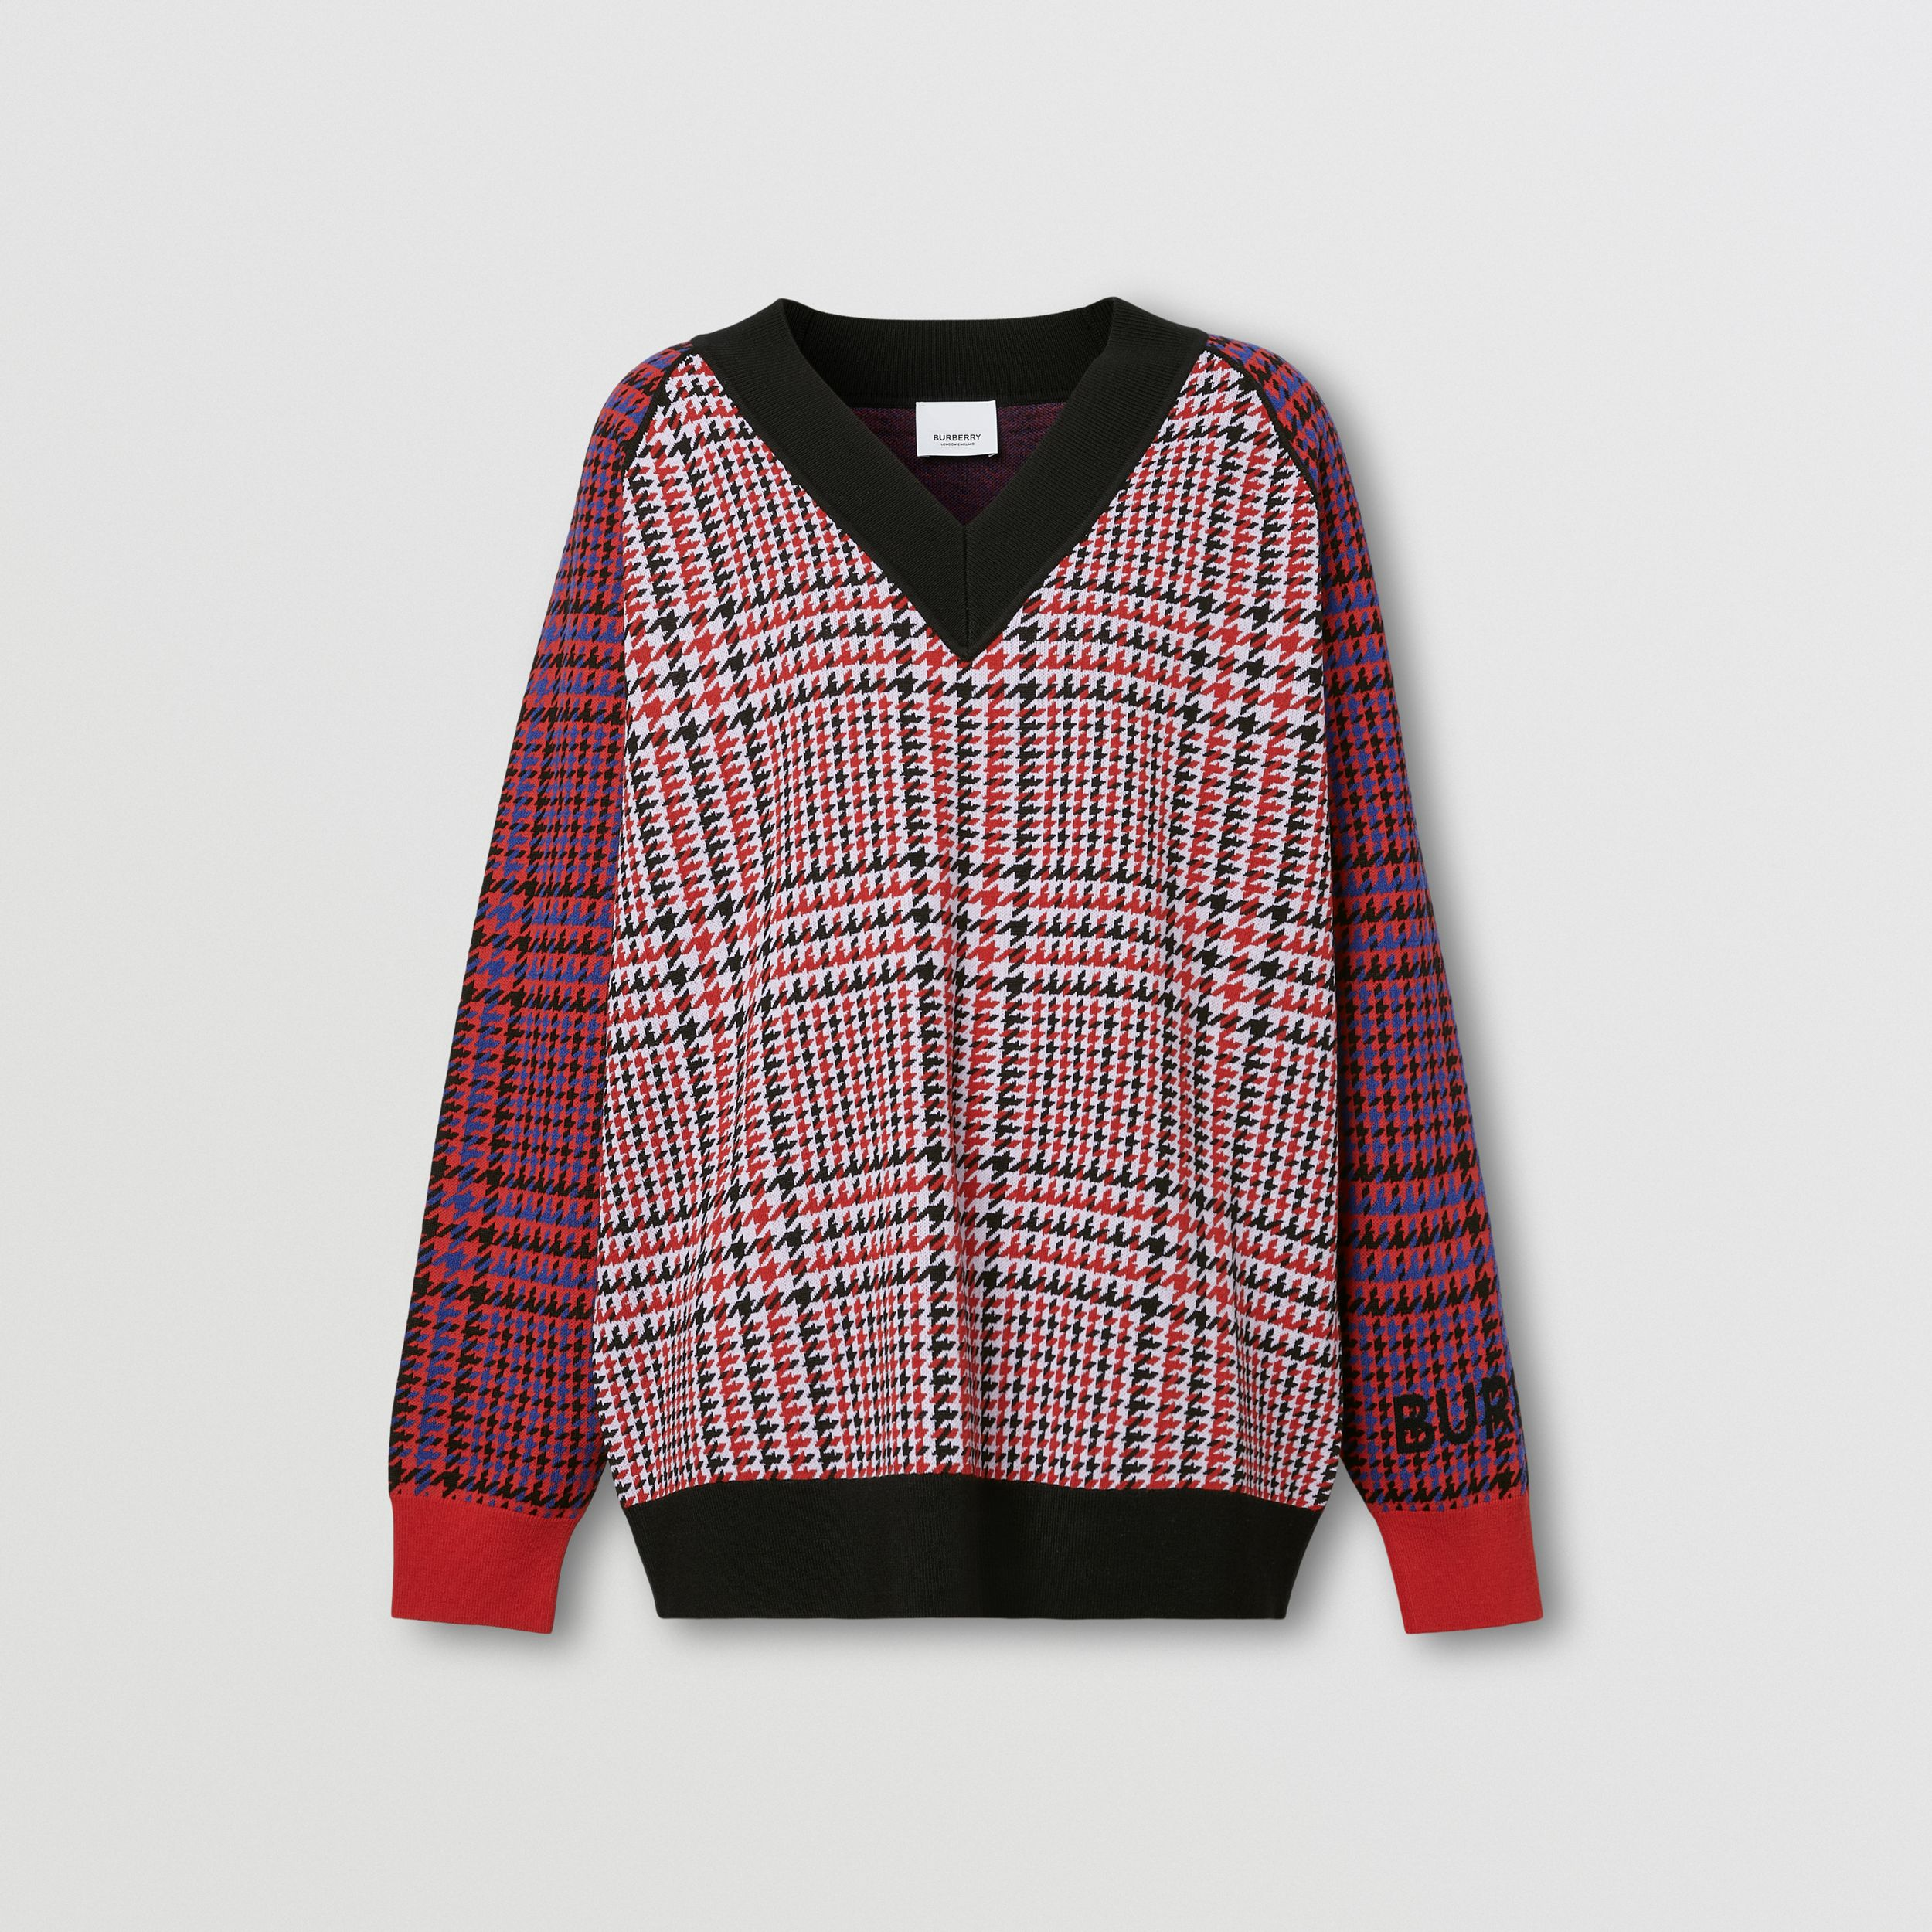 Houndstooth Check Technical Merino Wool Sweater in Bright Red - Women | Burberry - 4